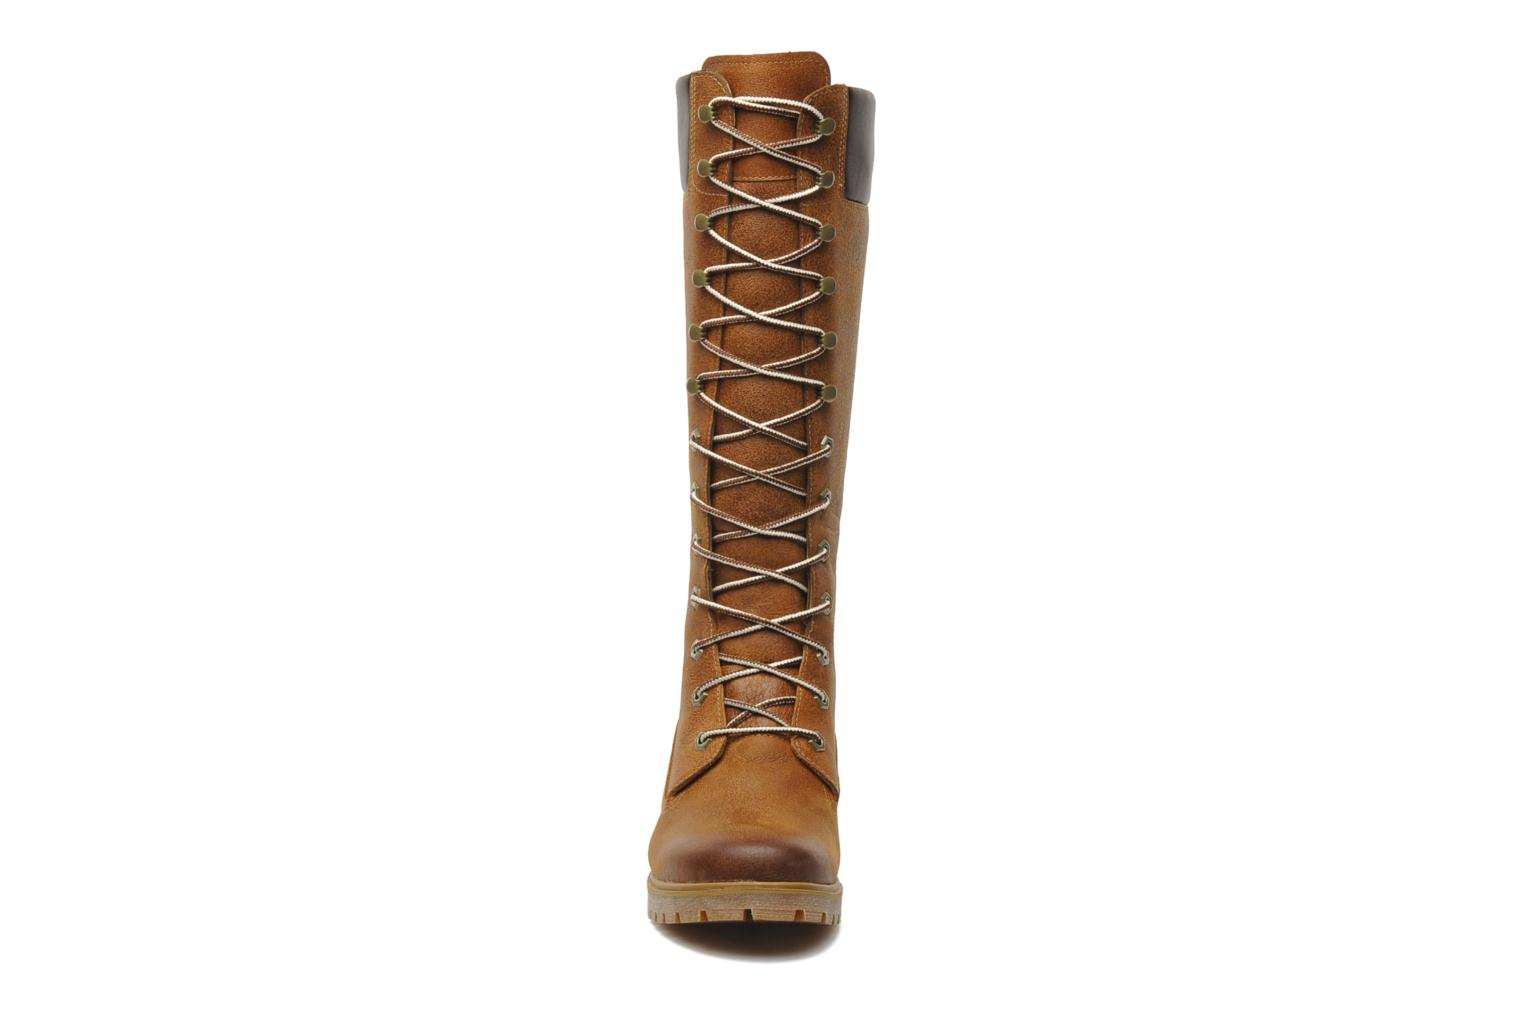 Women's Premium 14 inch Medium Brown